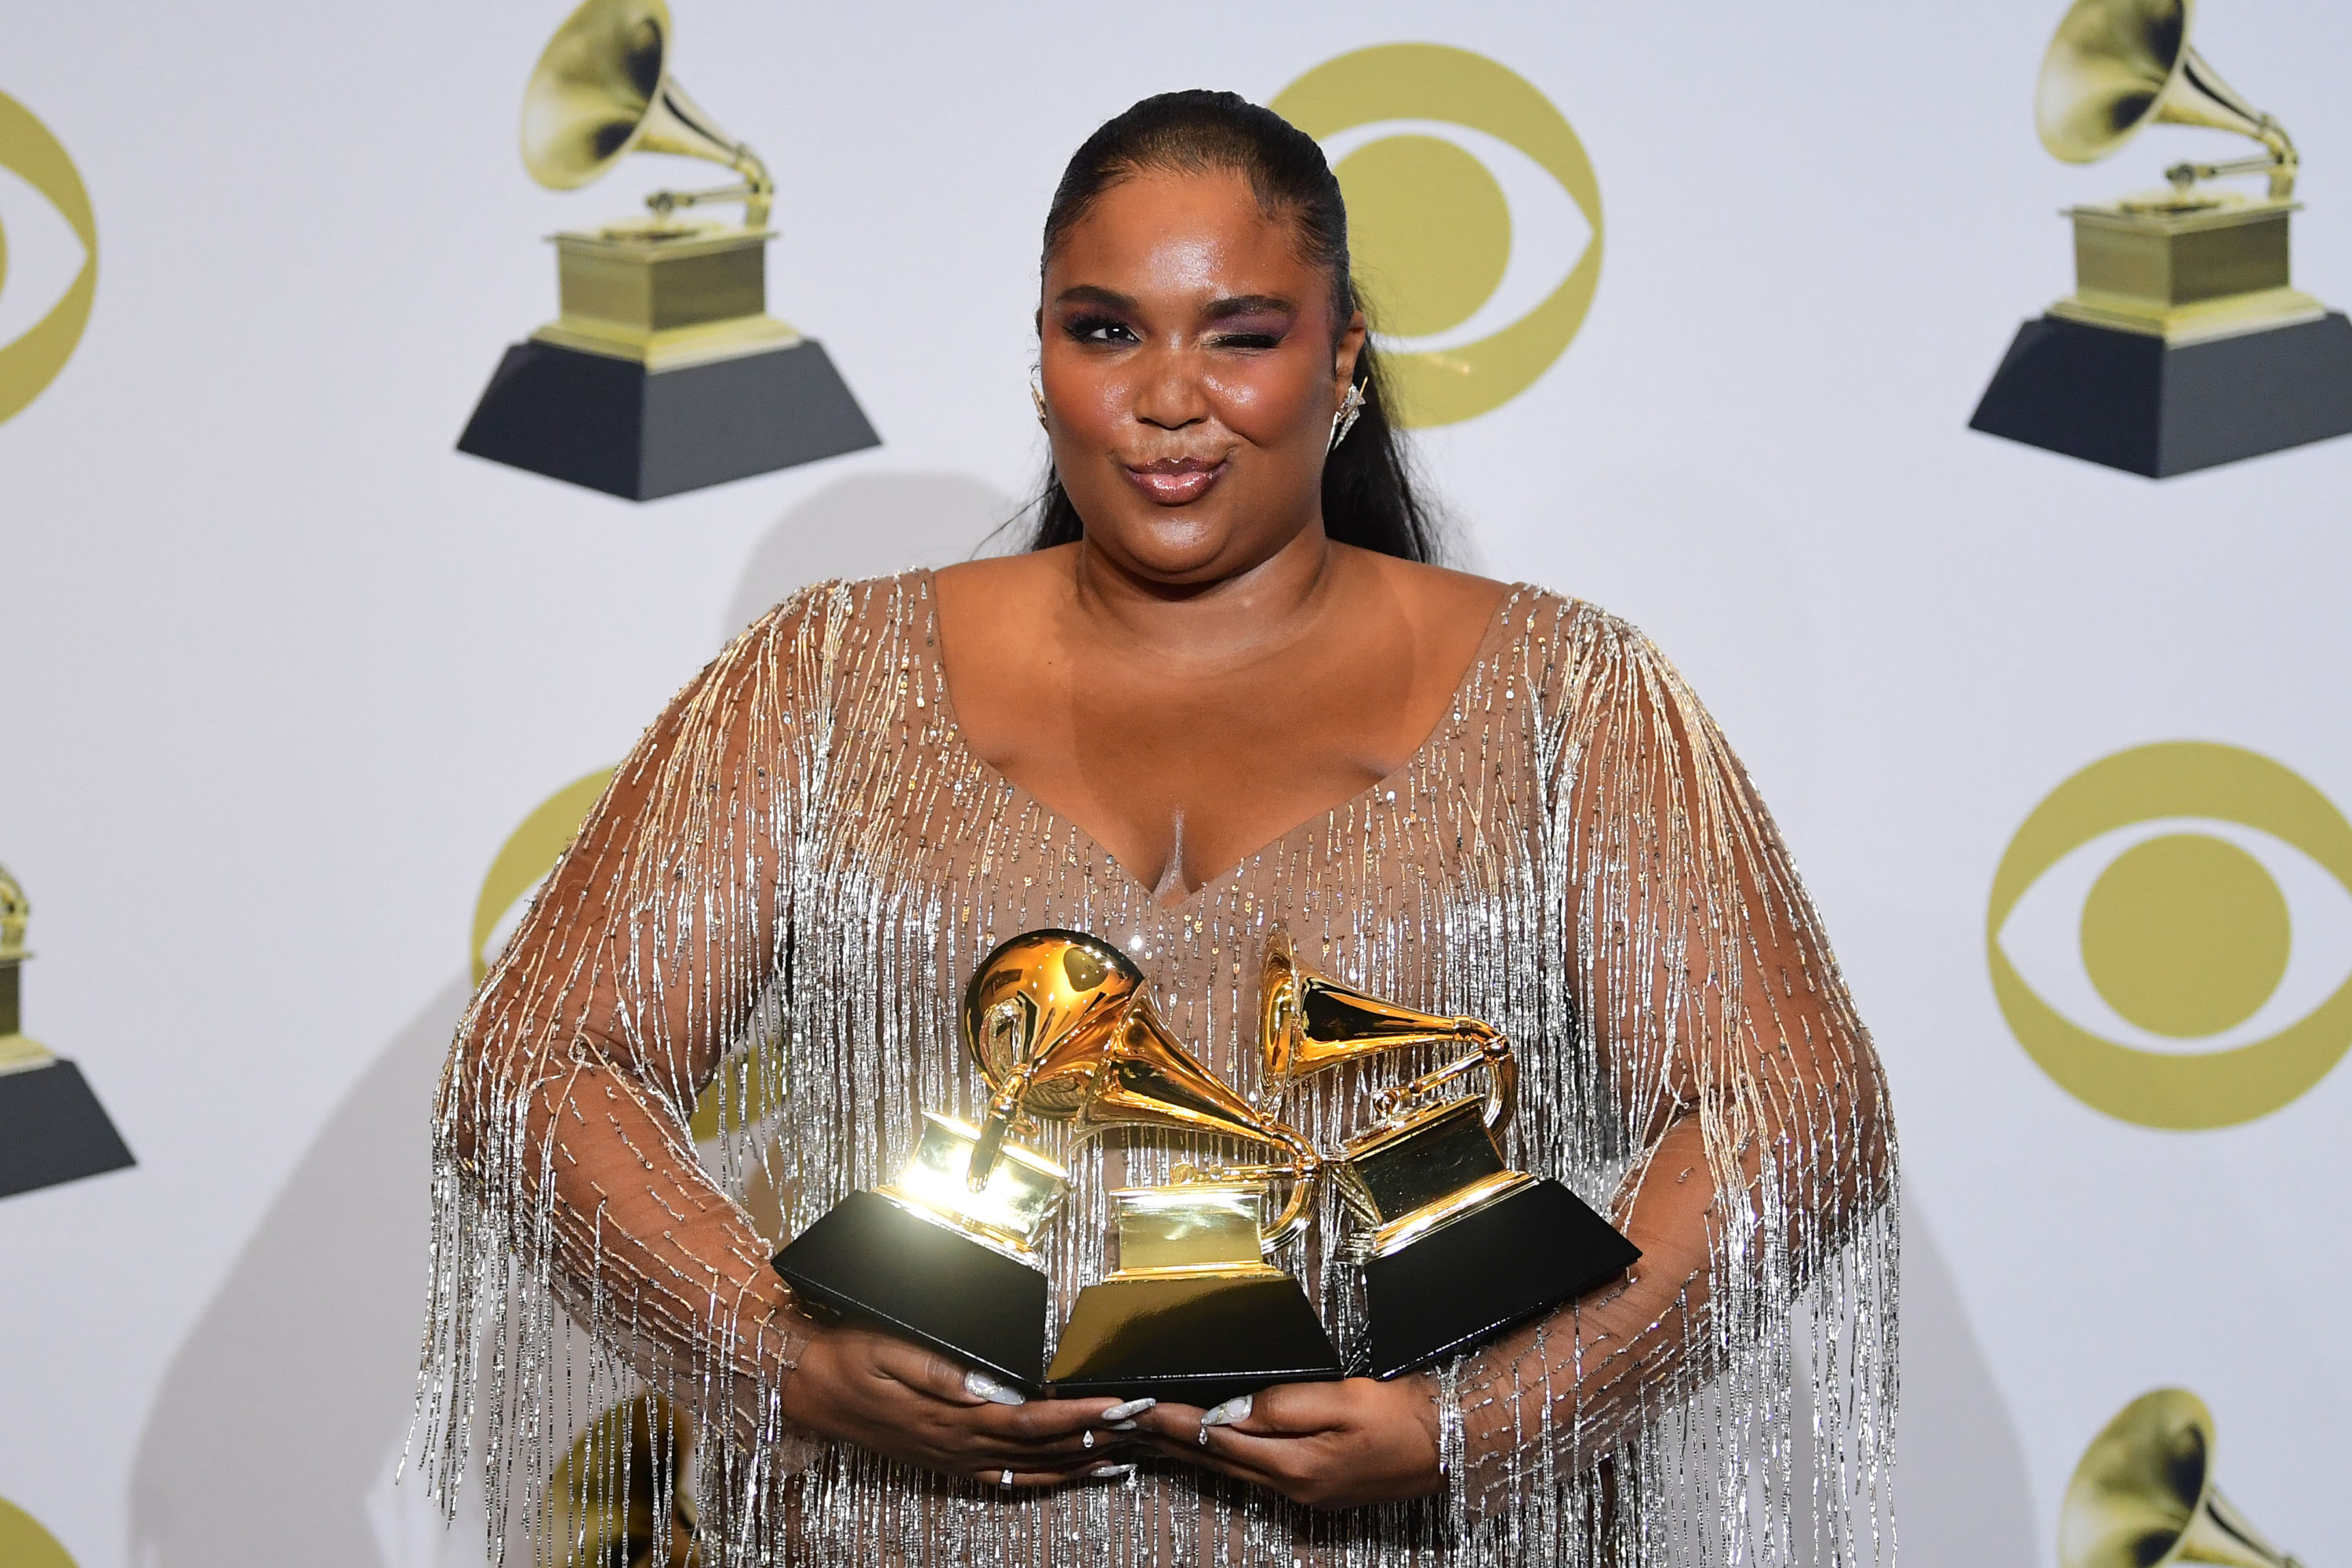 Lizzo aux Grammy awards